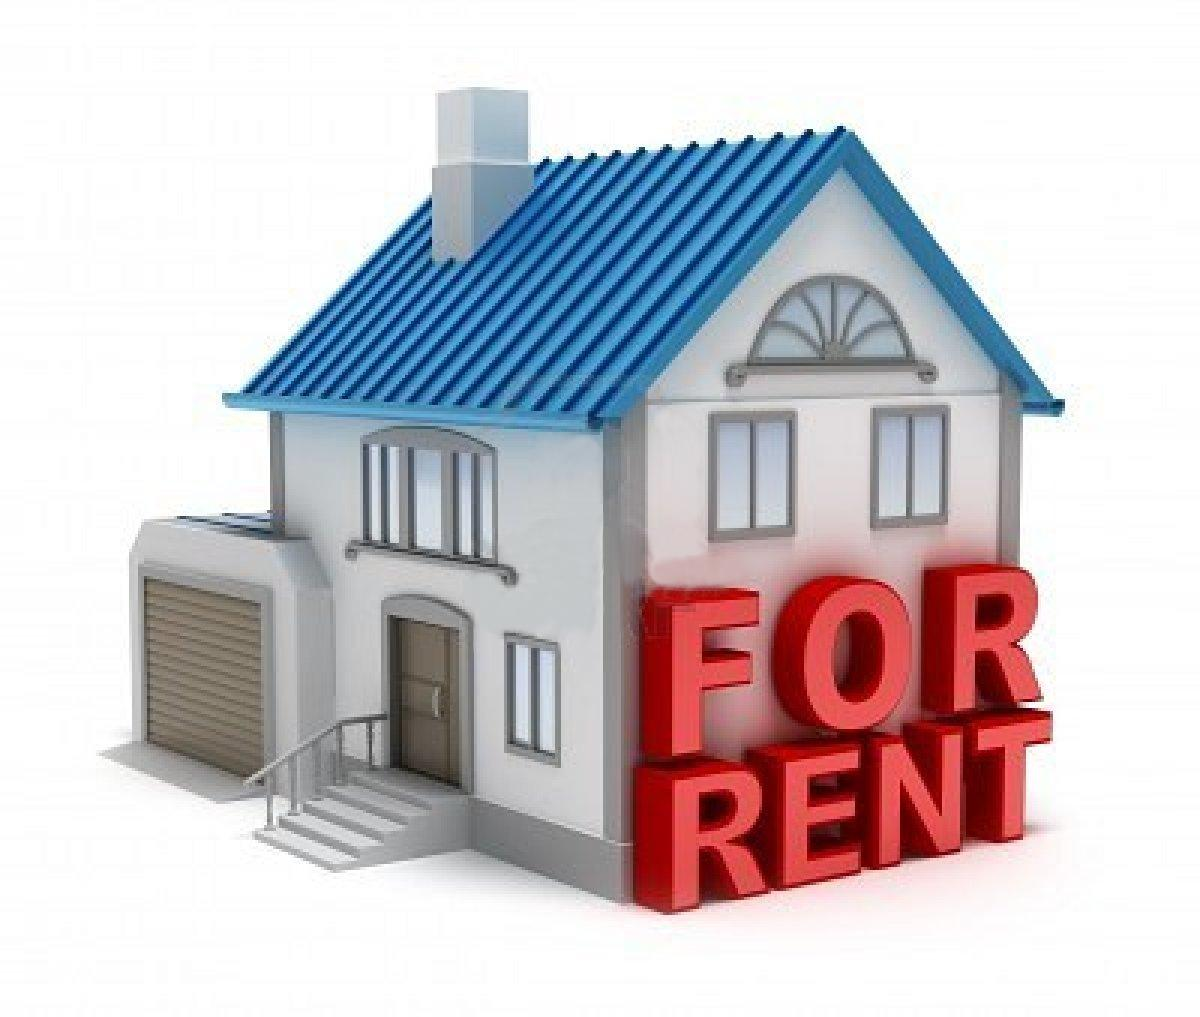 Renting Properties: How To Write An Effective Rental Advert